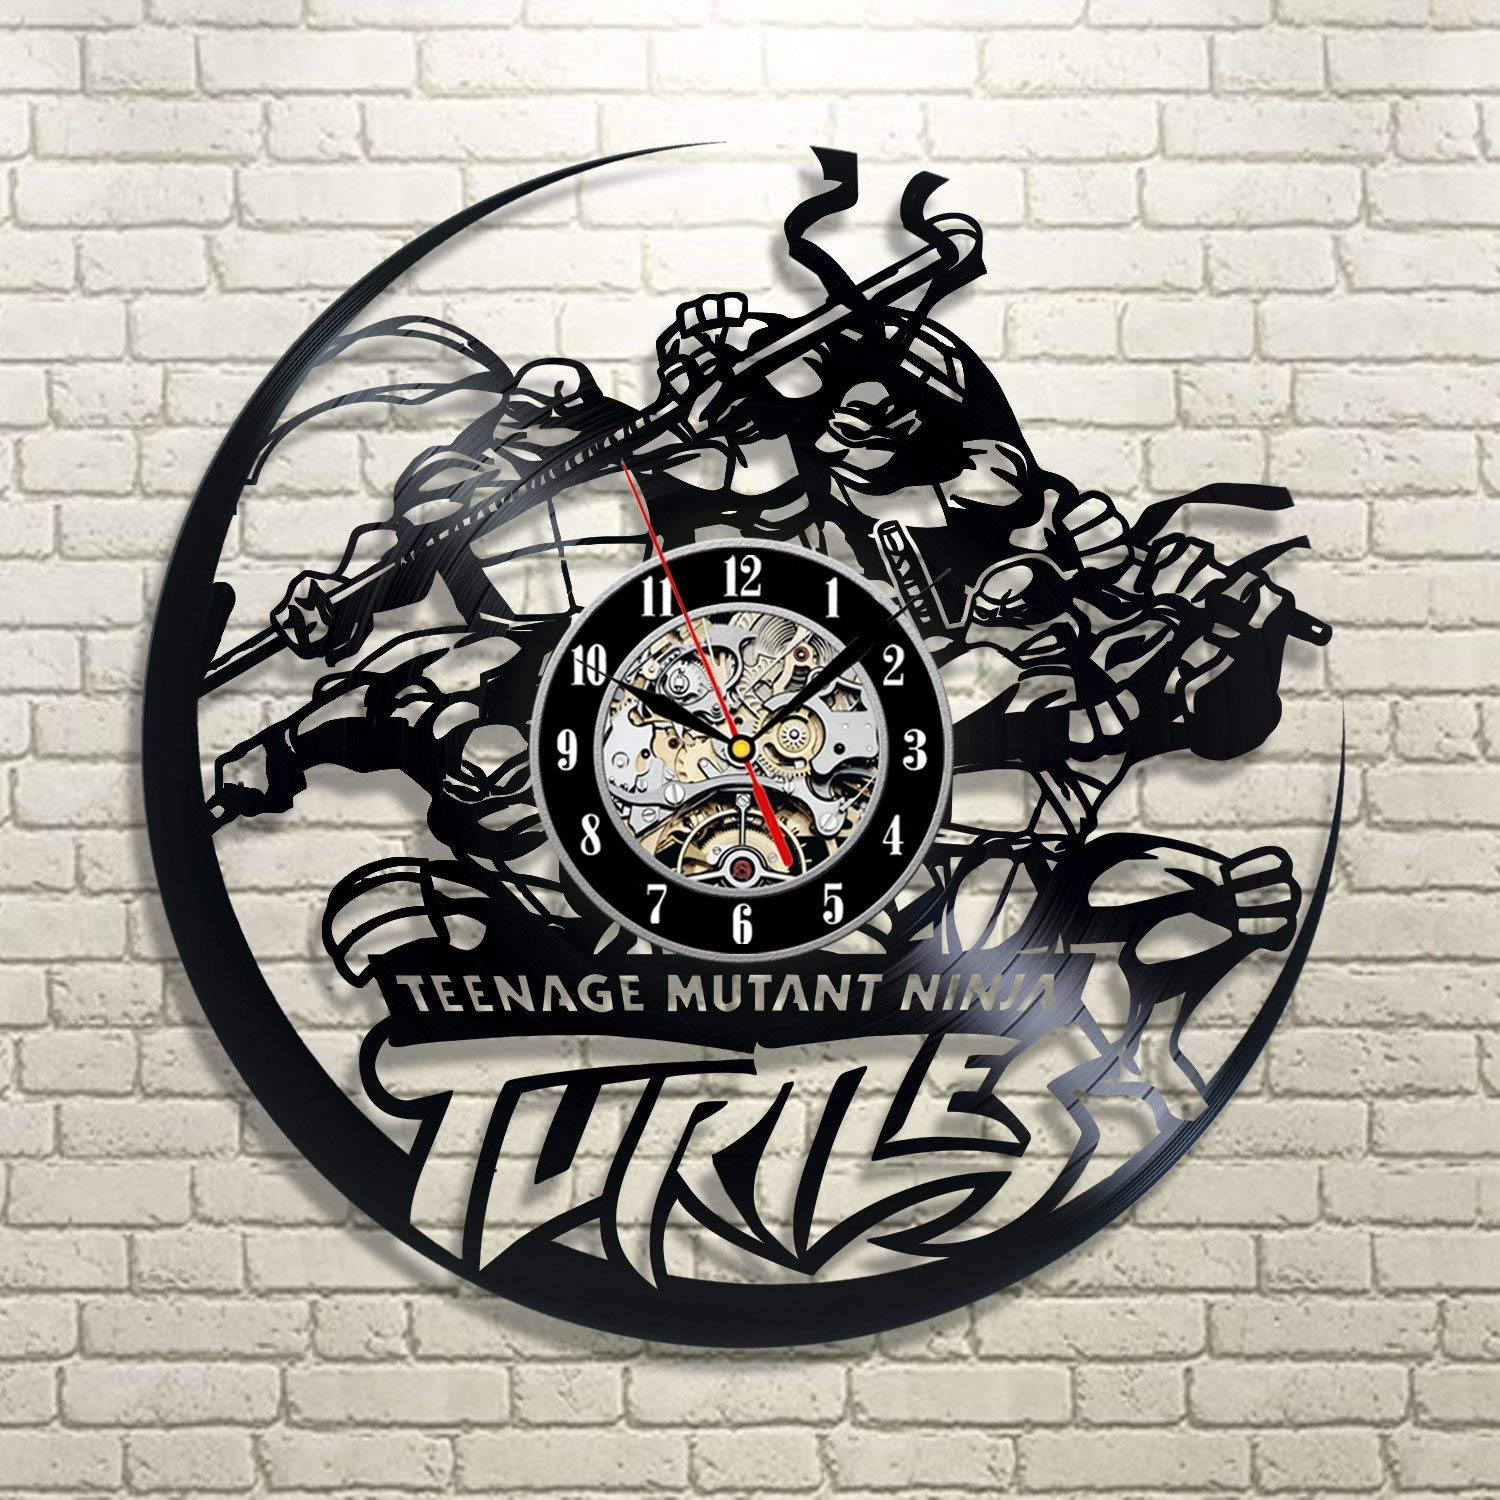 Wood Crafty Shop Teenage Mutant Ninja Turtles Vinyl Record Wall Clock Gift for Him and Her Unique Wall Decor The Best Gift Idea for Any Event Birthday Gift, Wedding Gift